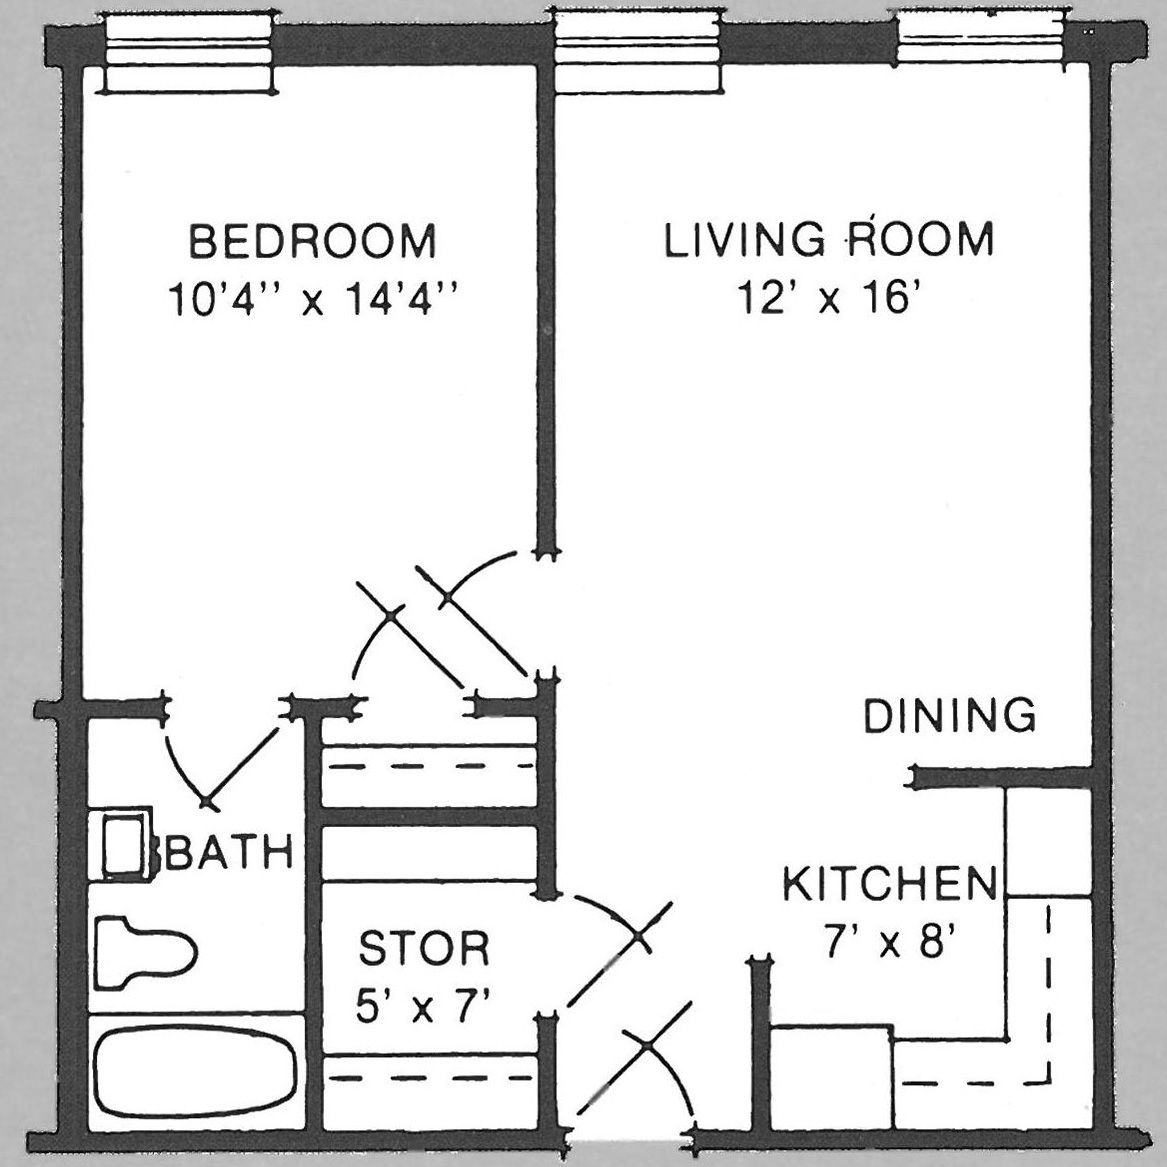 Total Living Area: 720